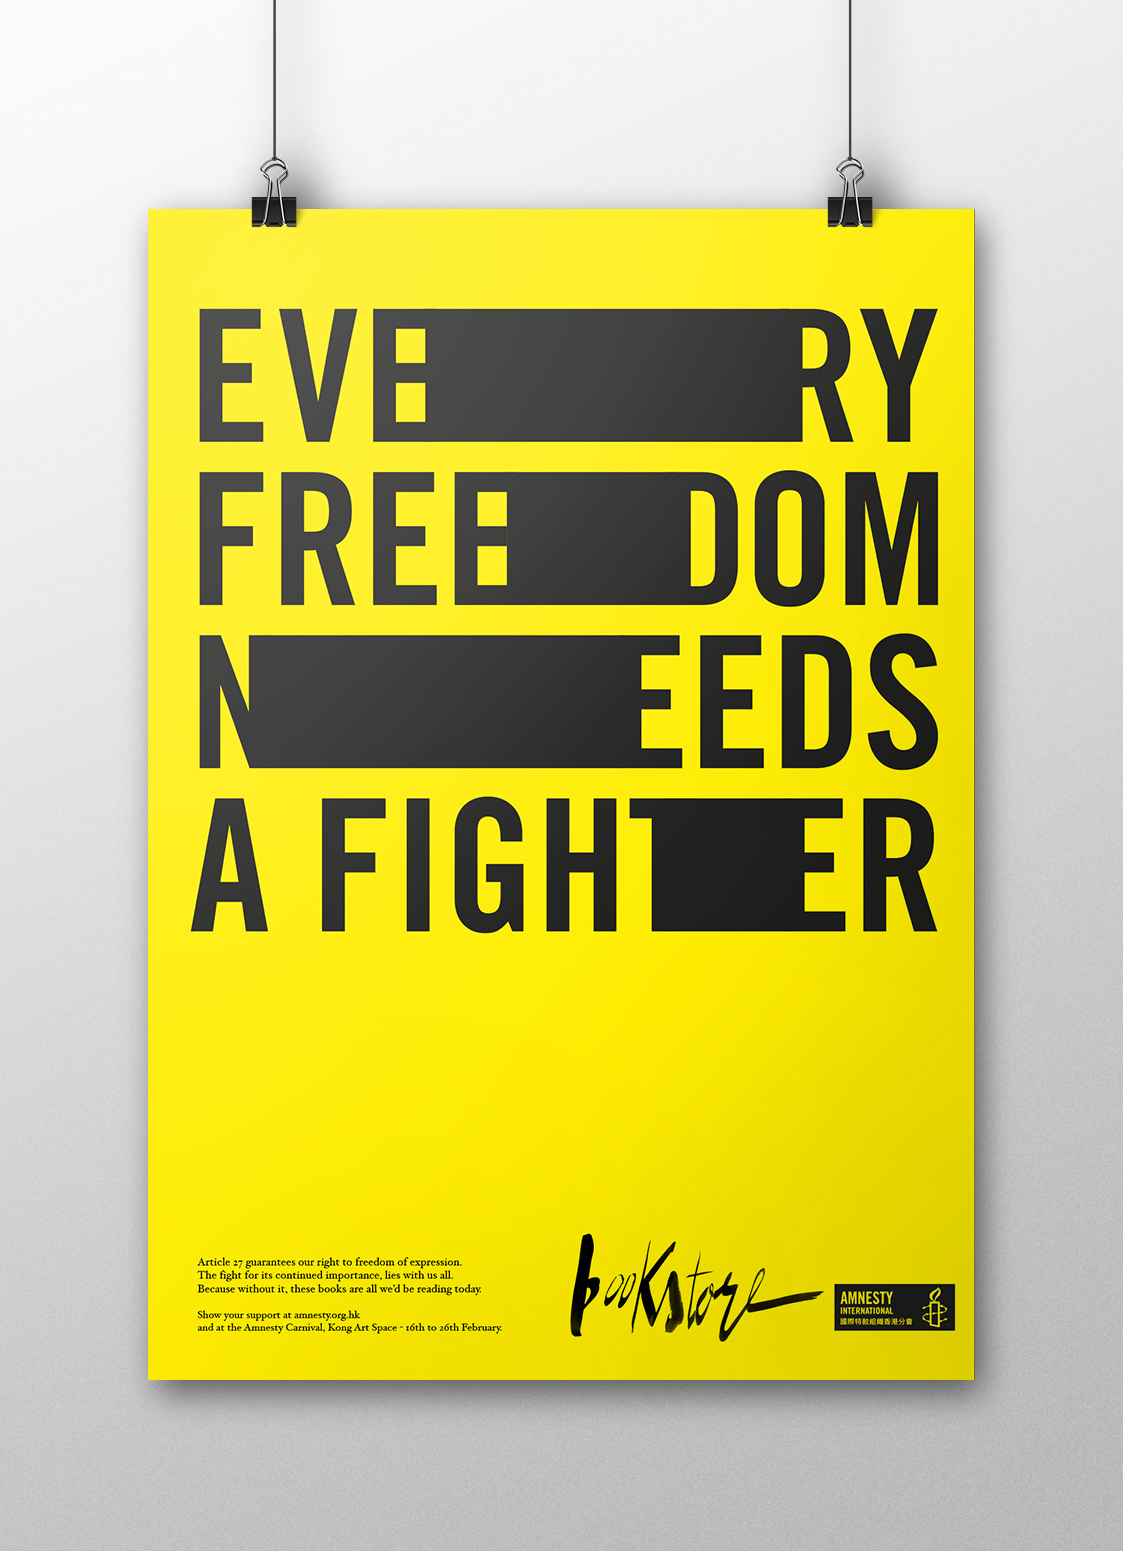 Mike Pearson Amnesty Design Poster